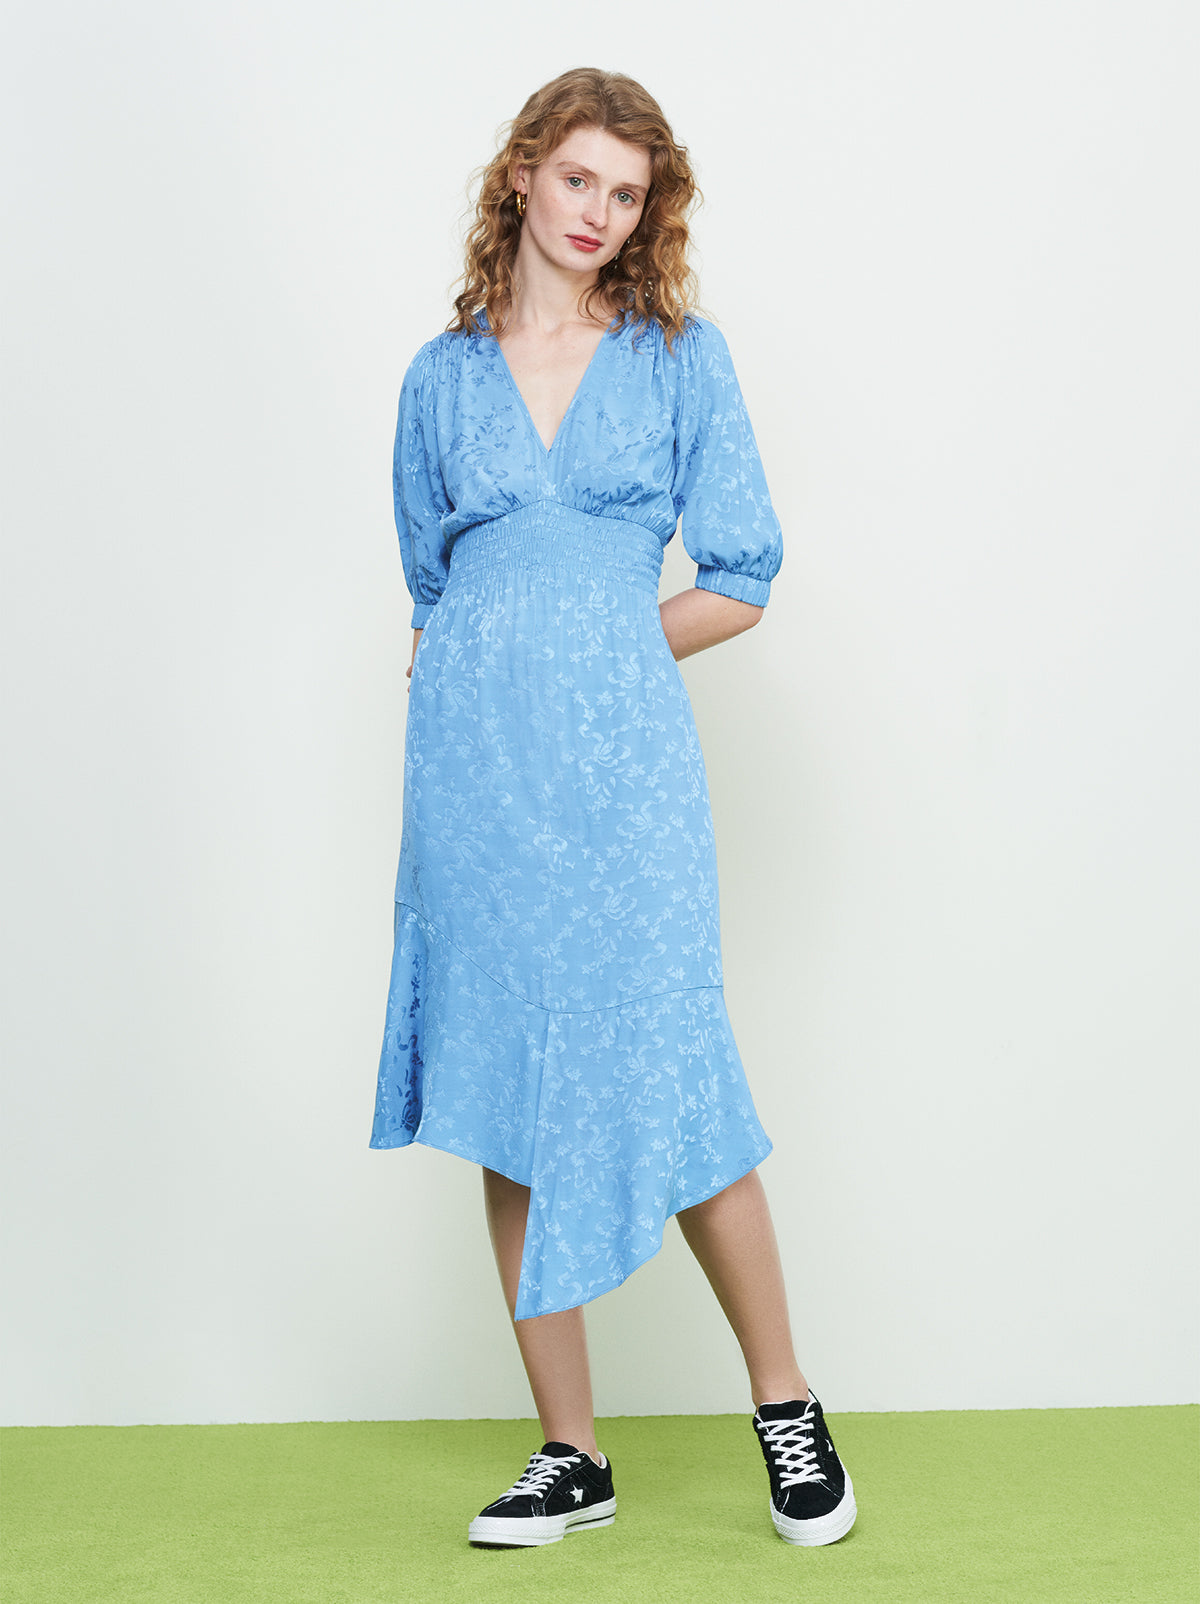 Dreda Blue Jacquard Tea Dress by KITRI Studio